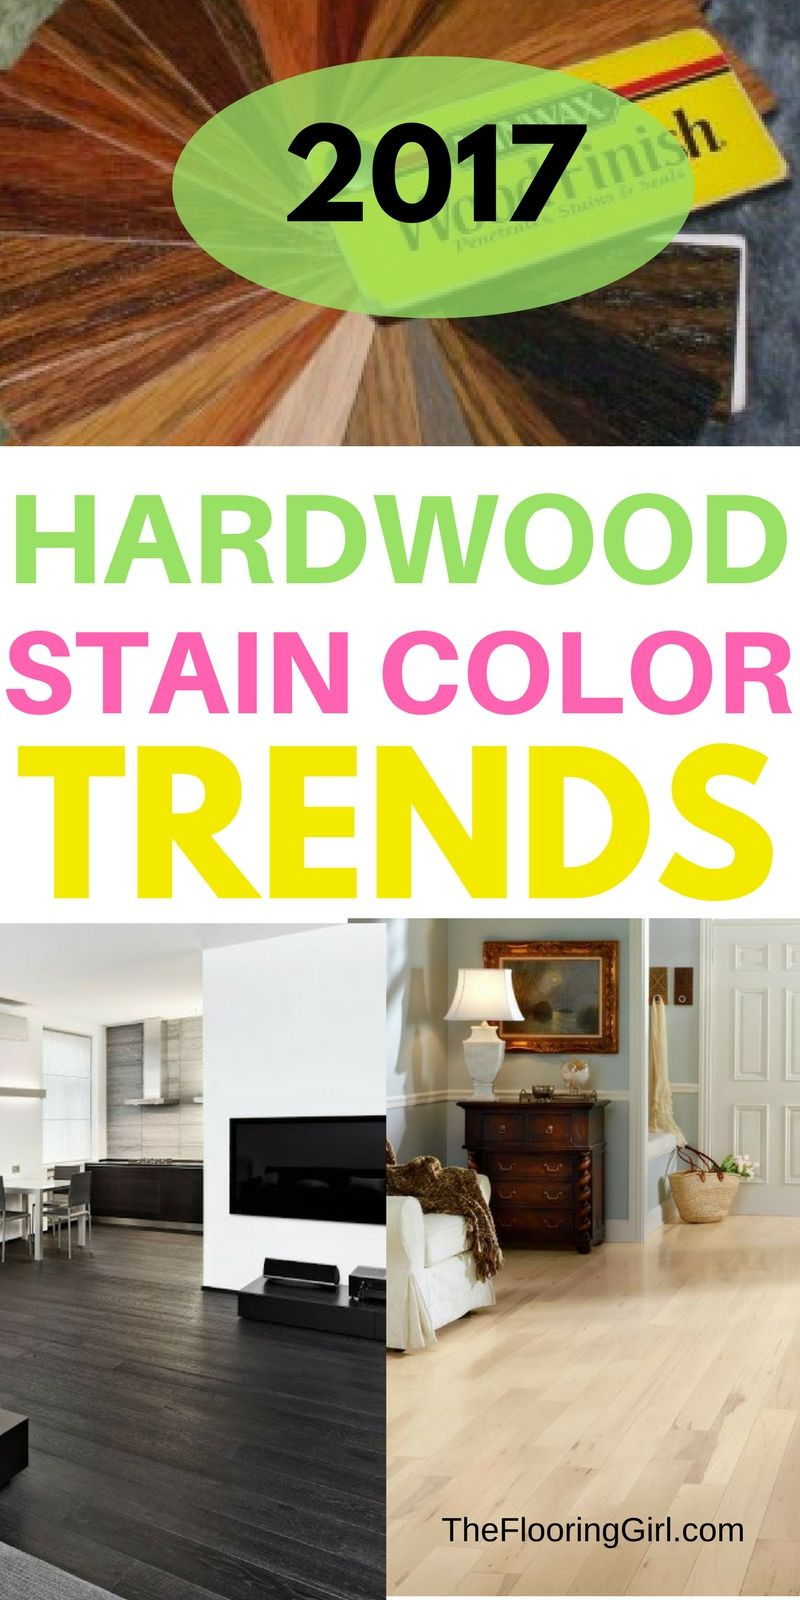 hardwood floor restoration chicago of hardwood flooring stain color trends 2018 more from the flooring in hardwood flooring stain color trends for 2017 hardwood colors that are in style theflooringgirl com